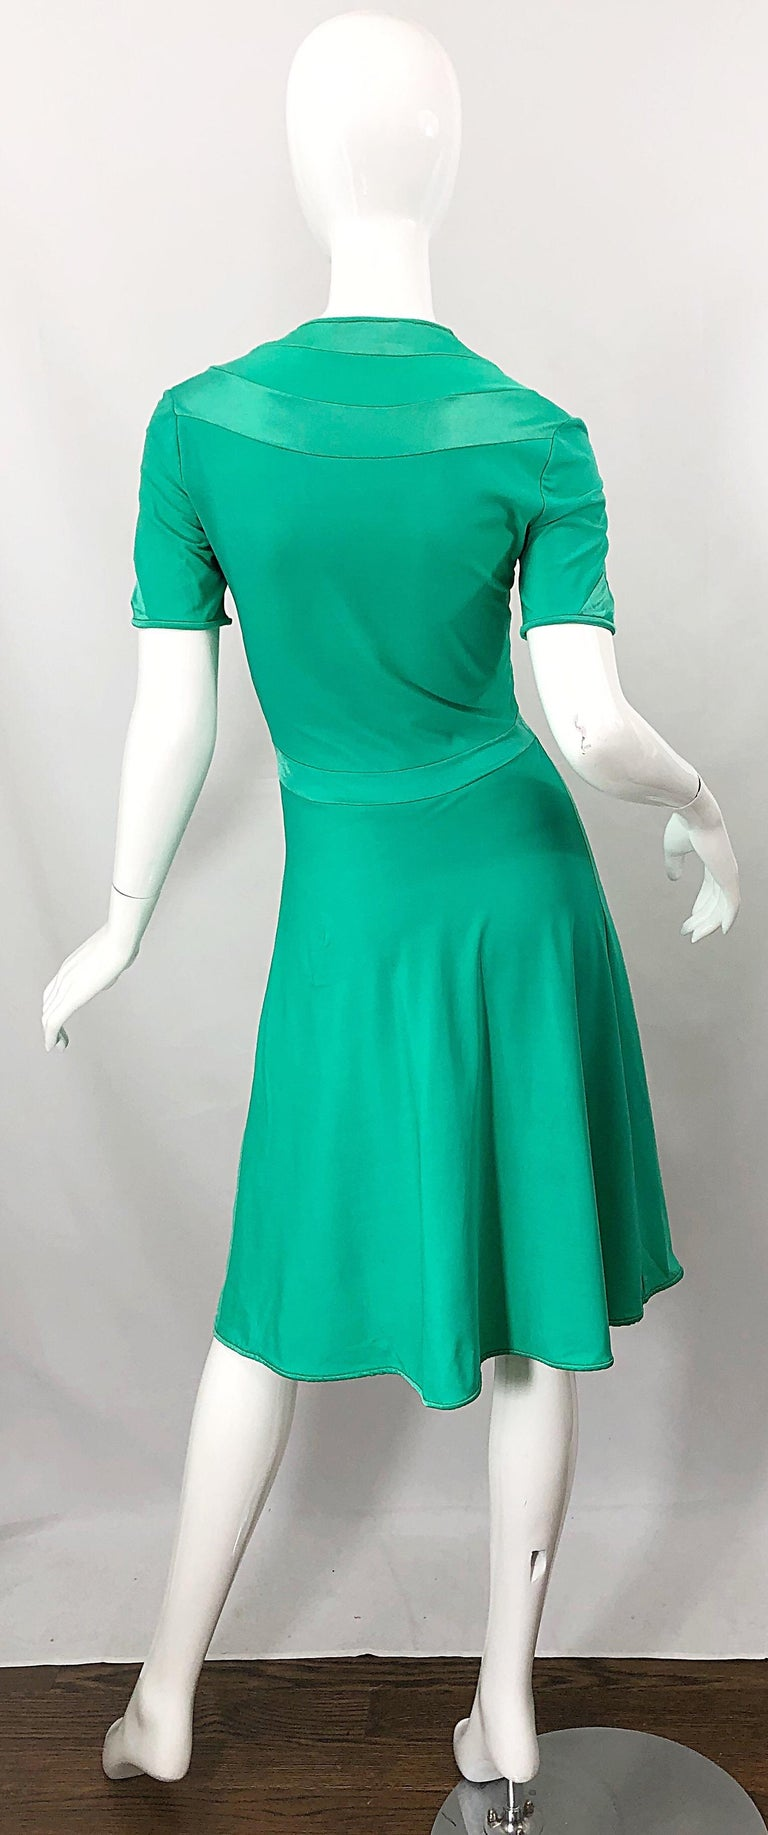 Women's Giorgio di Sant Angelo Kelly Green Slinky Bodysuit Vintage 70s Jersey Dress For Sale